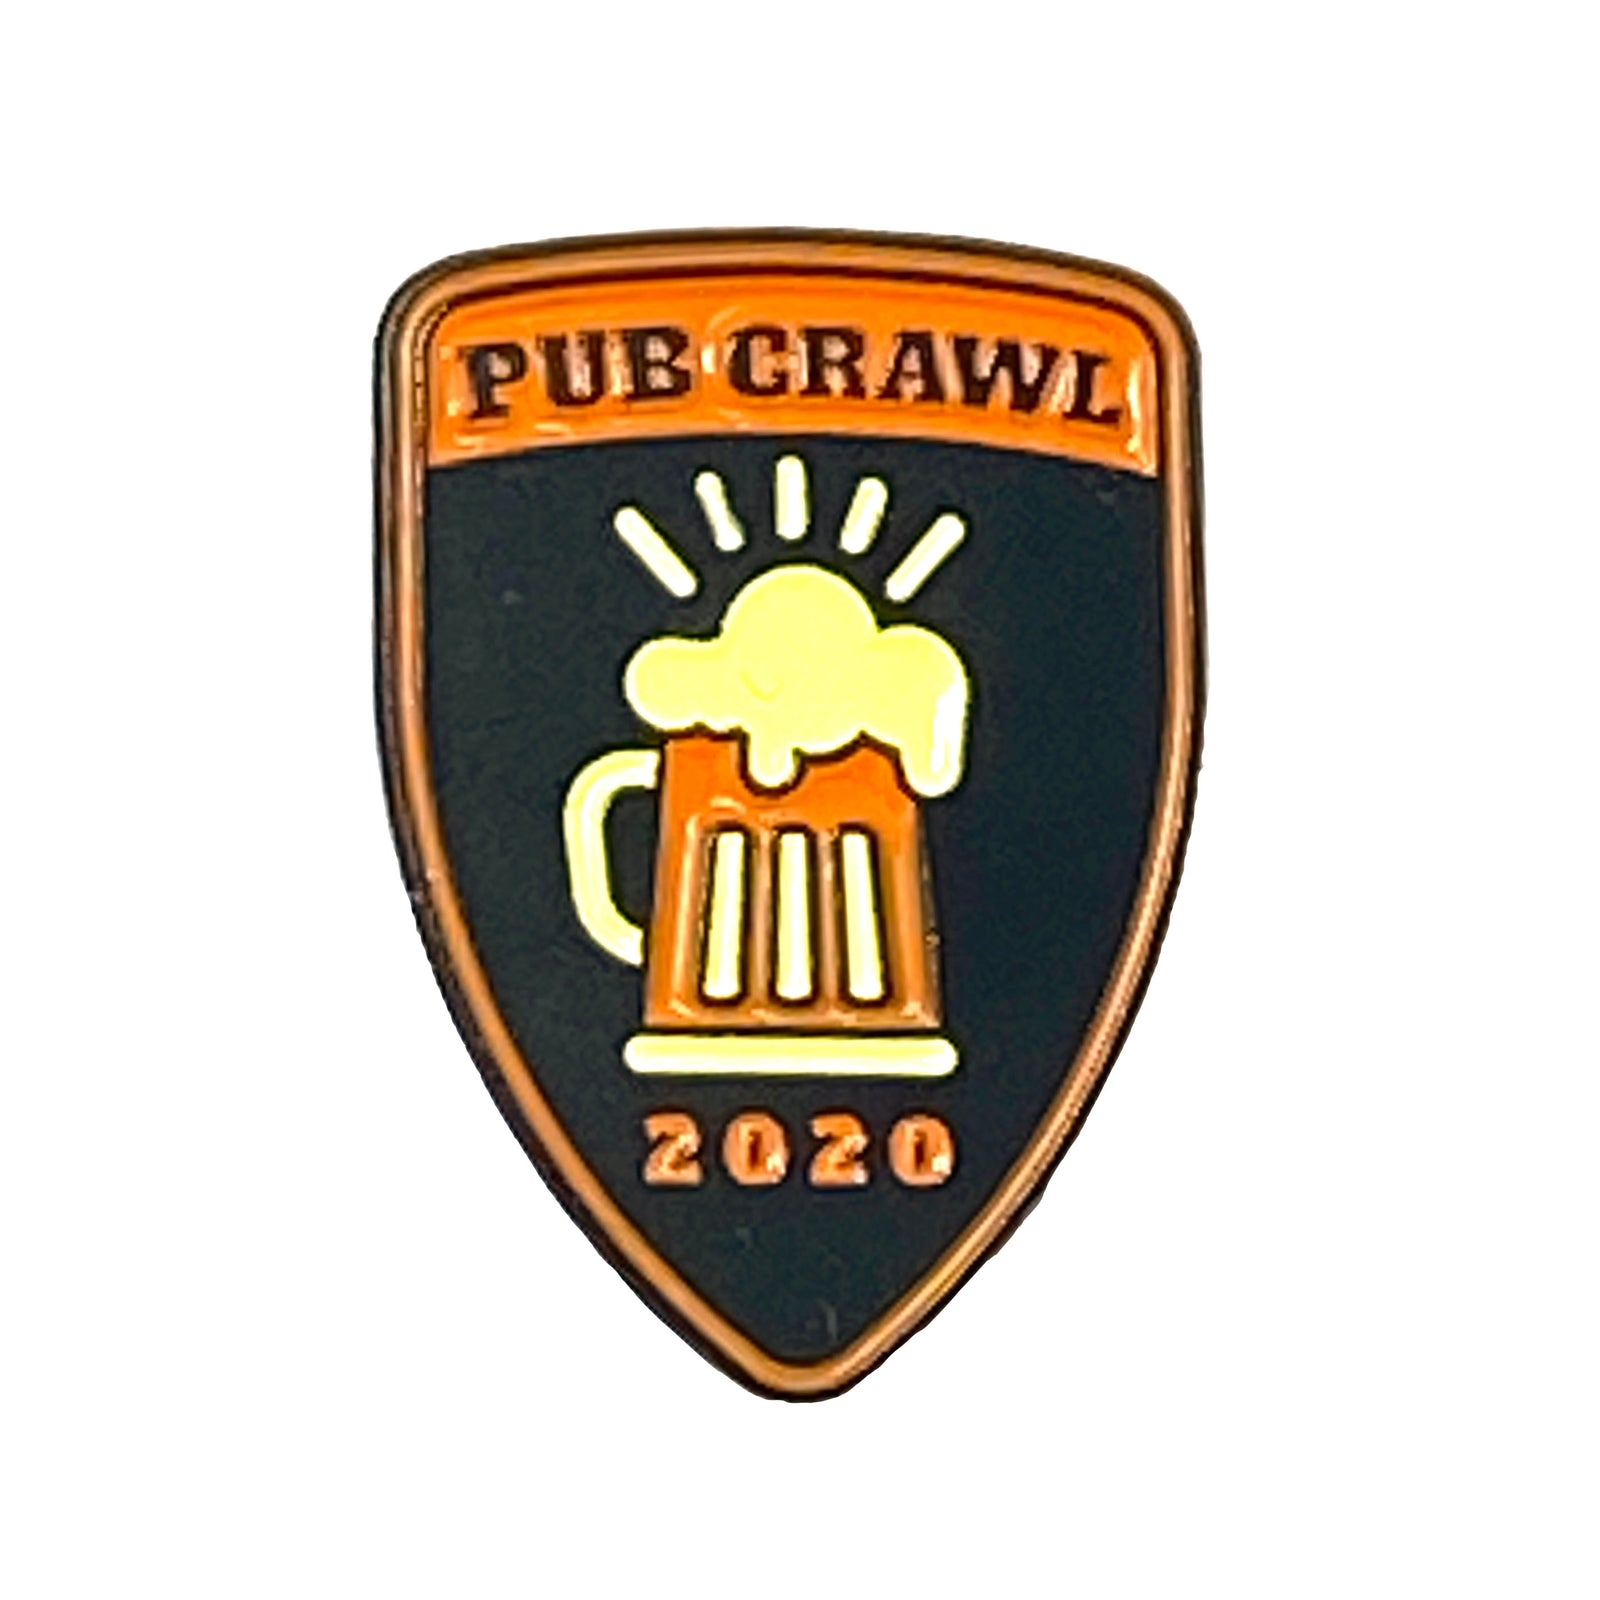 2020 Pub Crawl Pin